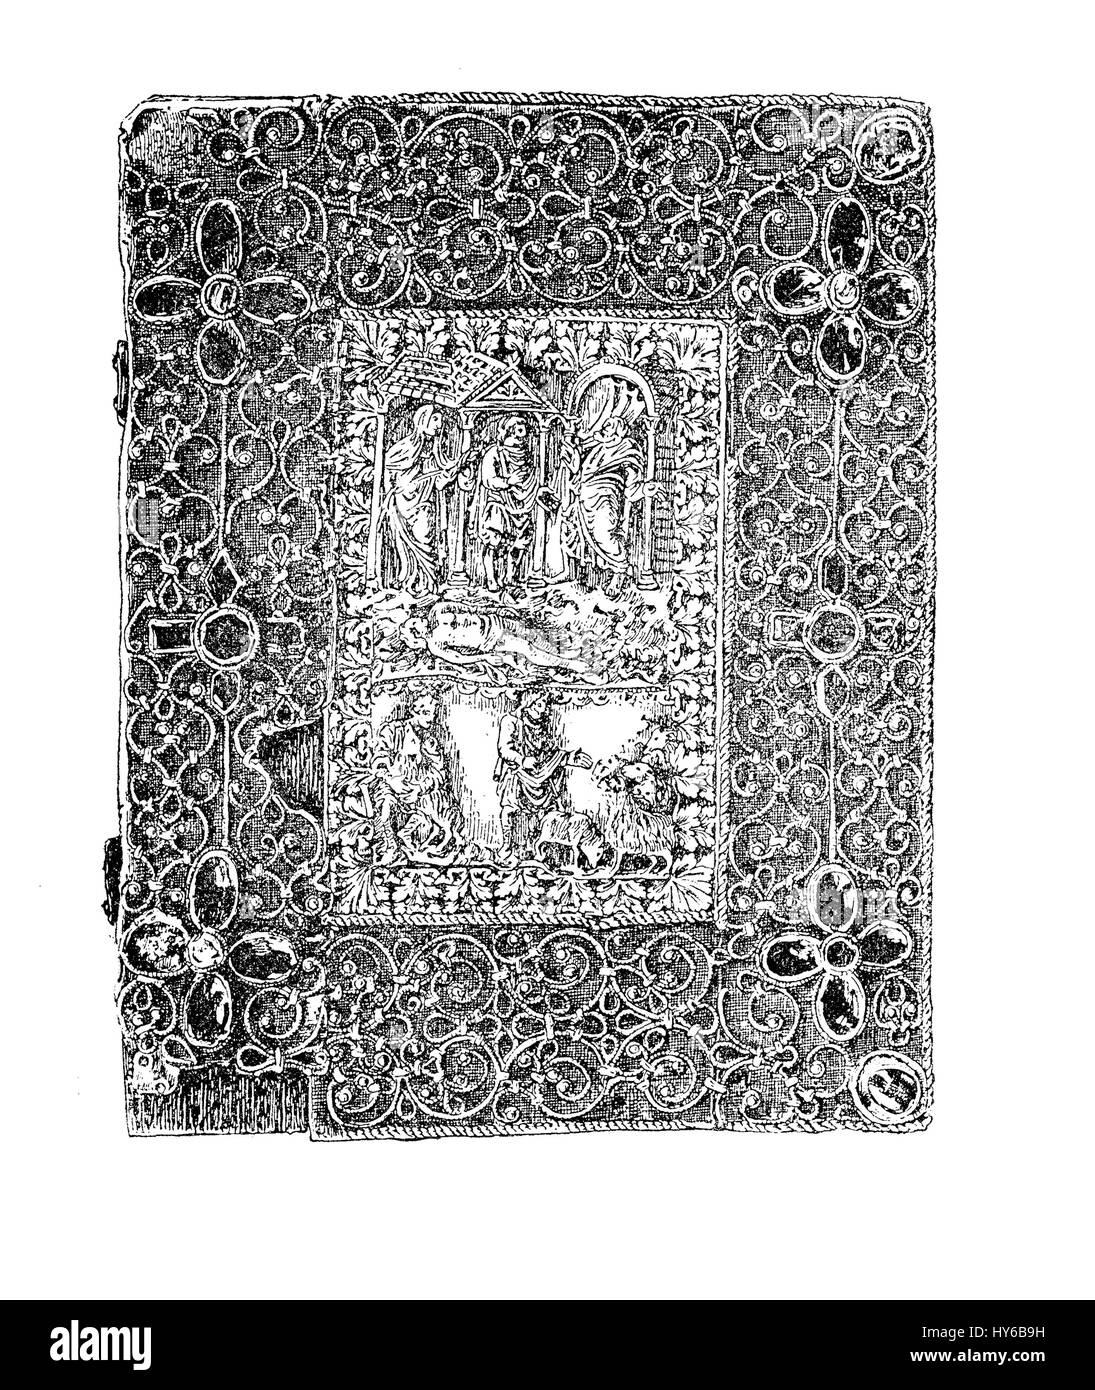 Medieval jeweled bookbinding with metalwork, ivory carvings and jewels, Karolingian time, IX century - Stock Image